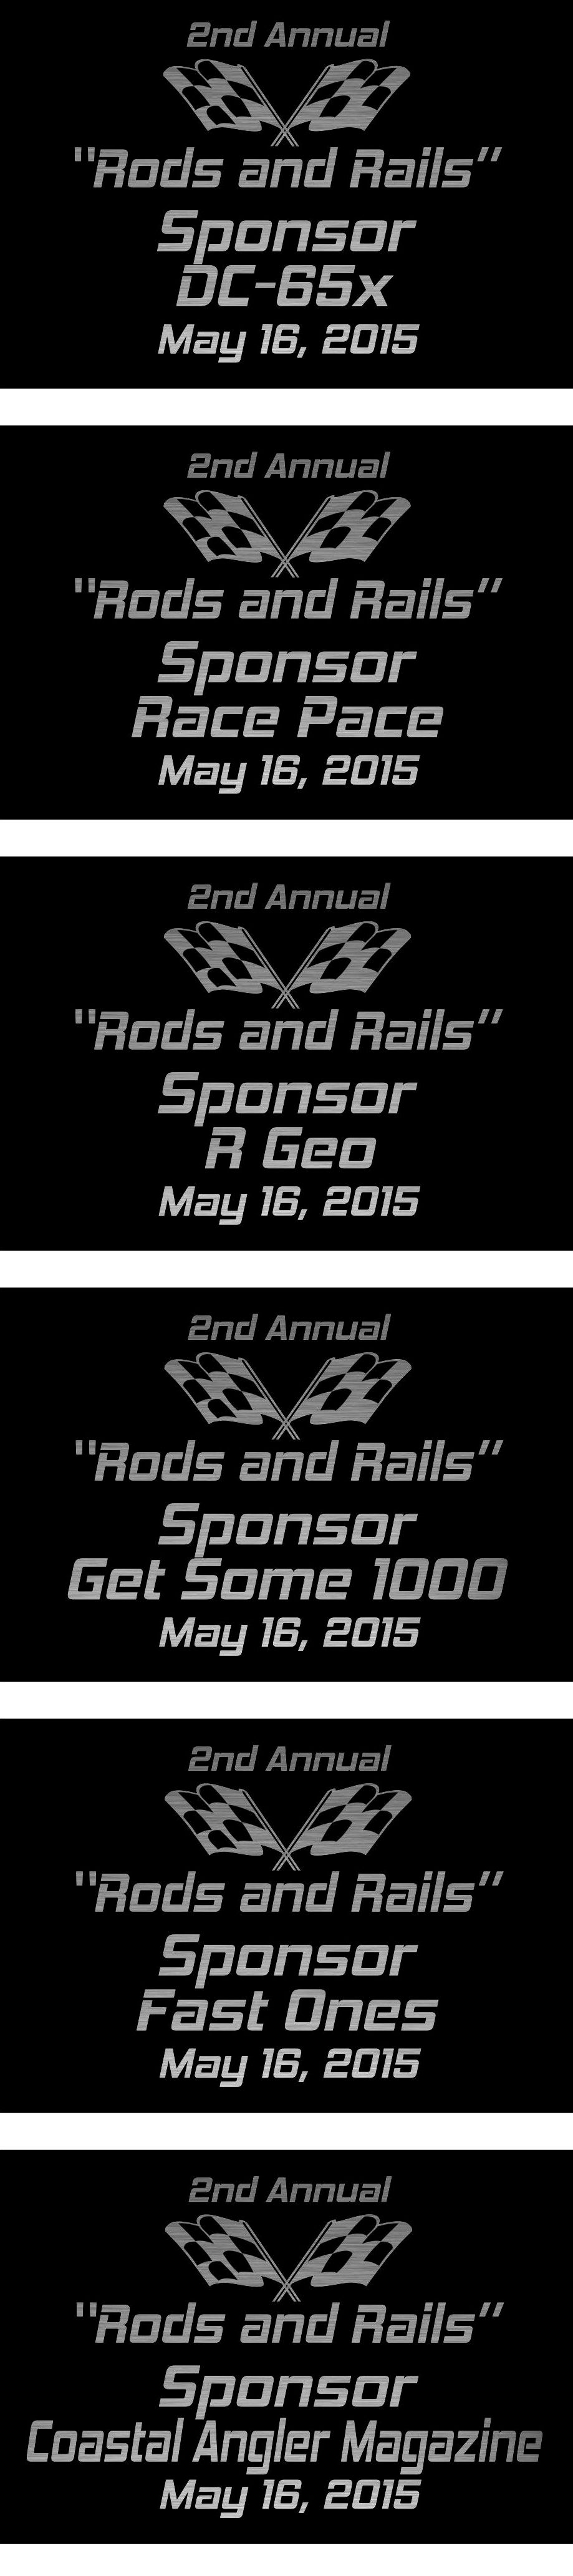 Rods and Rails GB sponsors(1).jpg